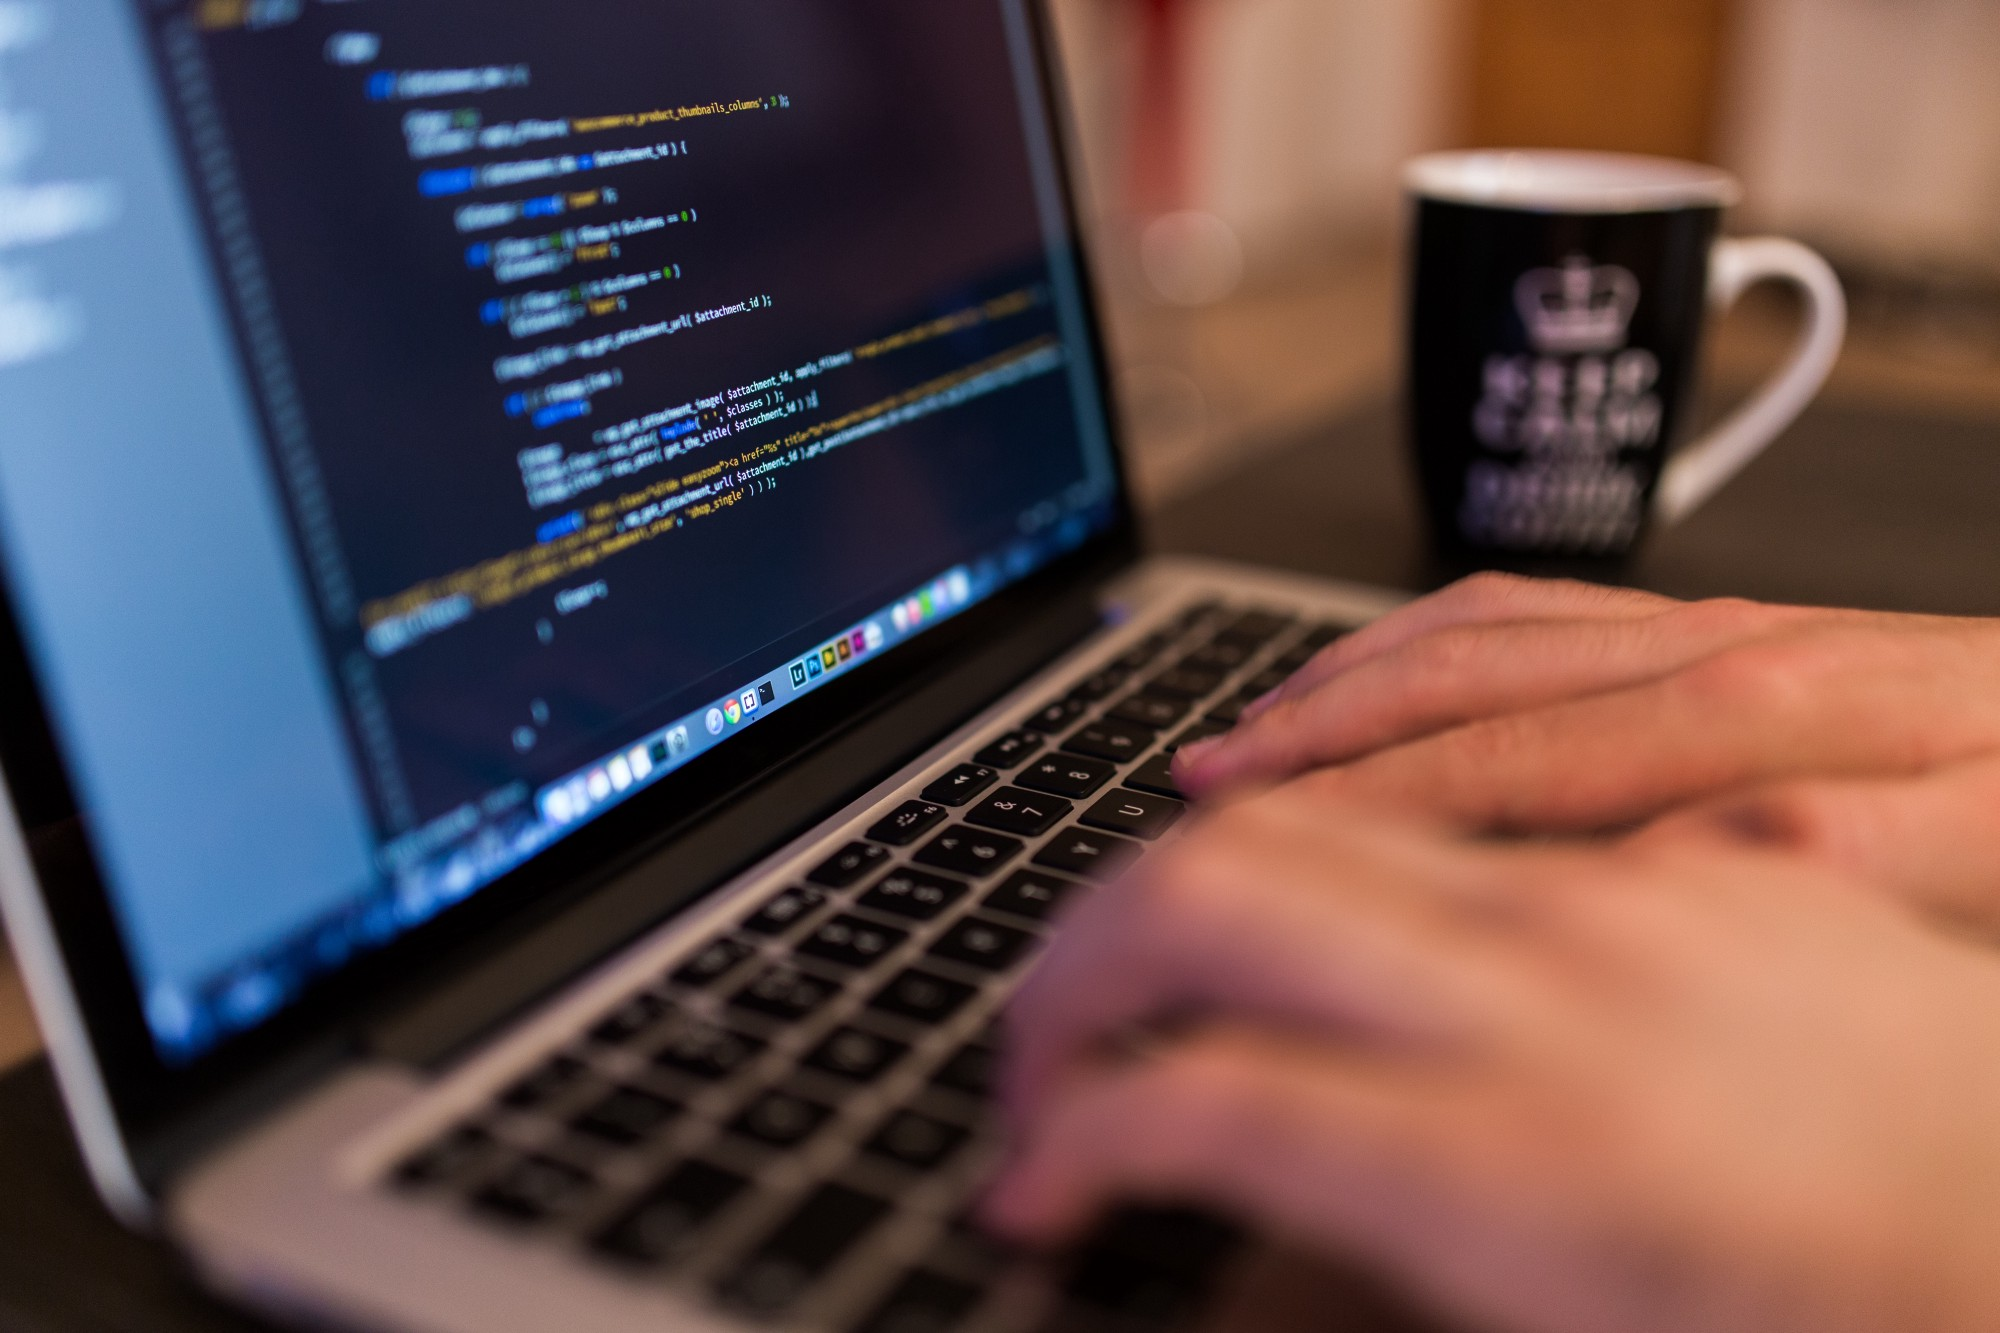 Someone coding (probably Javascript) on a Mac and drinking coffee or tea. Courtesy of Unsplash.